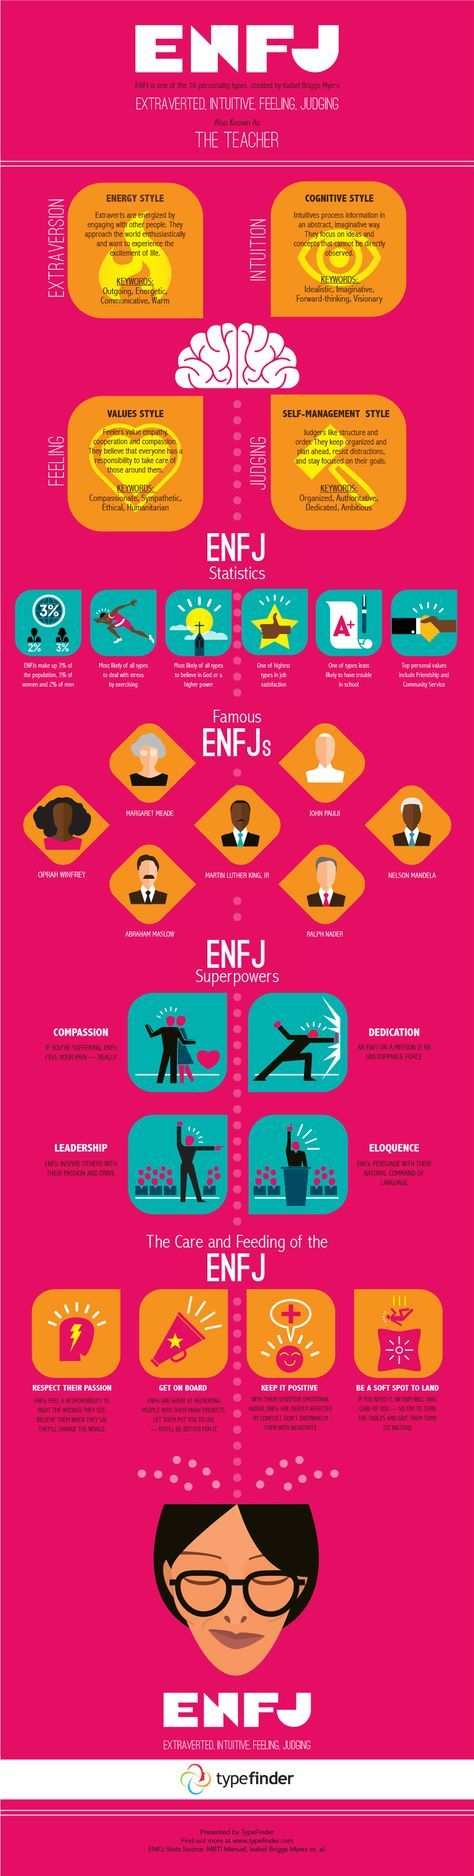 Enfj dating another enfj